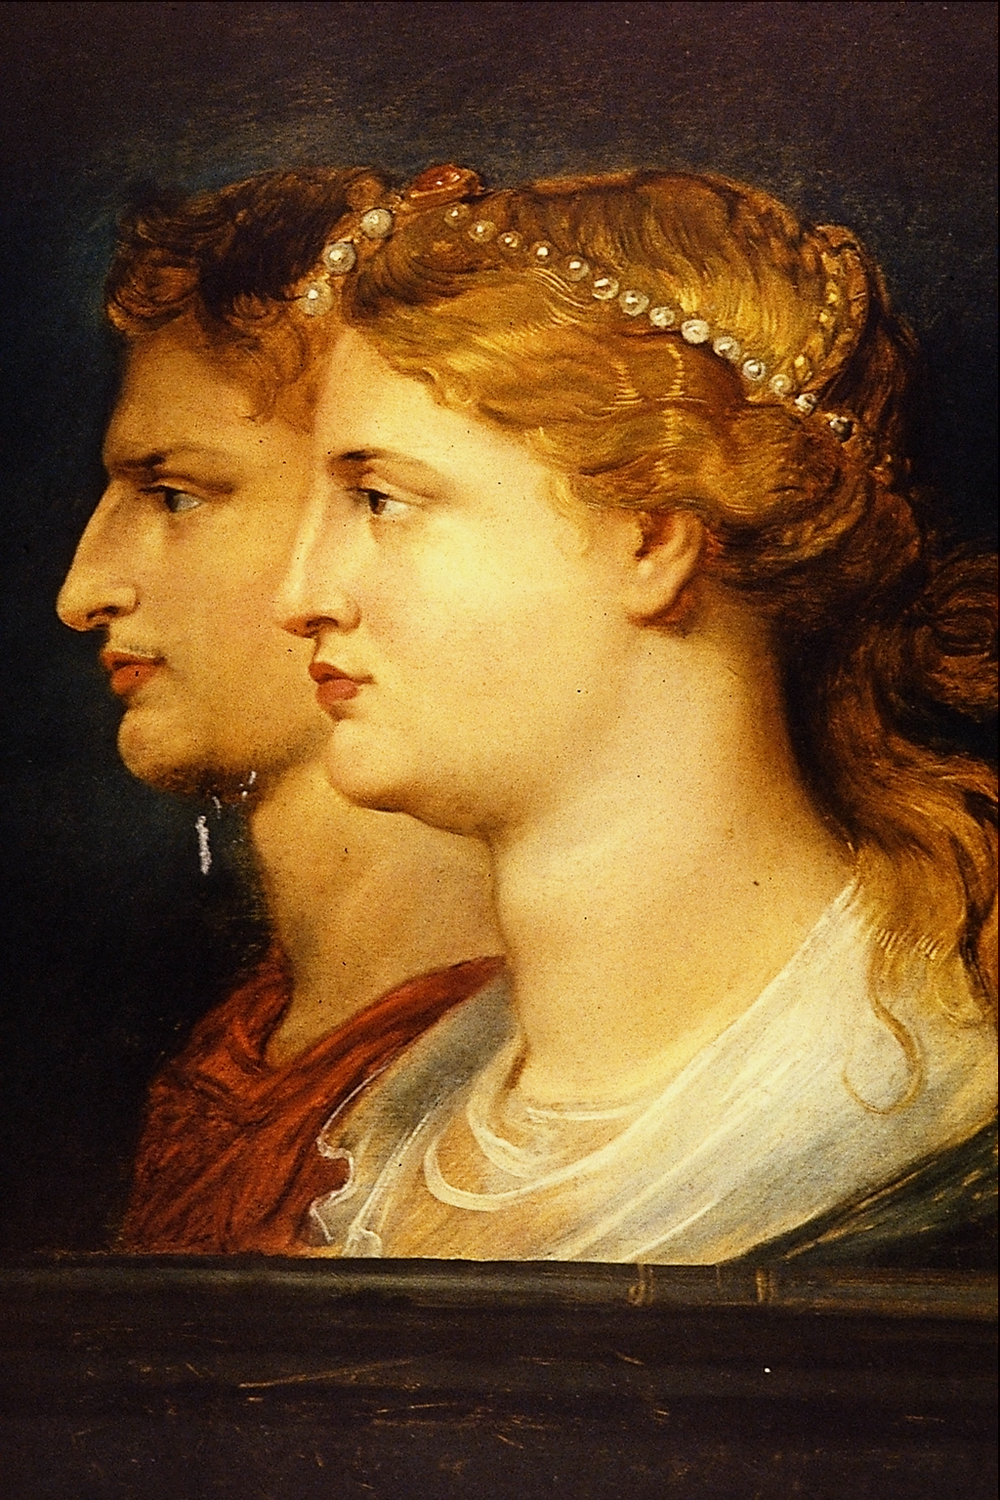 Tiberius and Agrippina  (Vipsania) by Peter Paul Rubens.